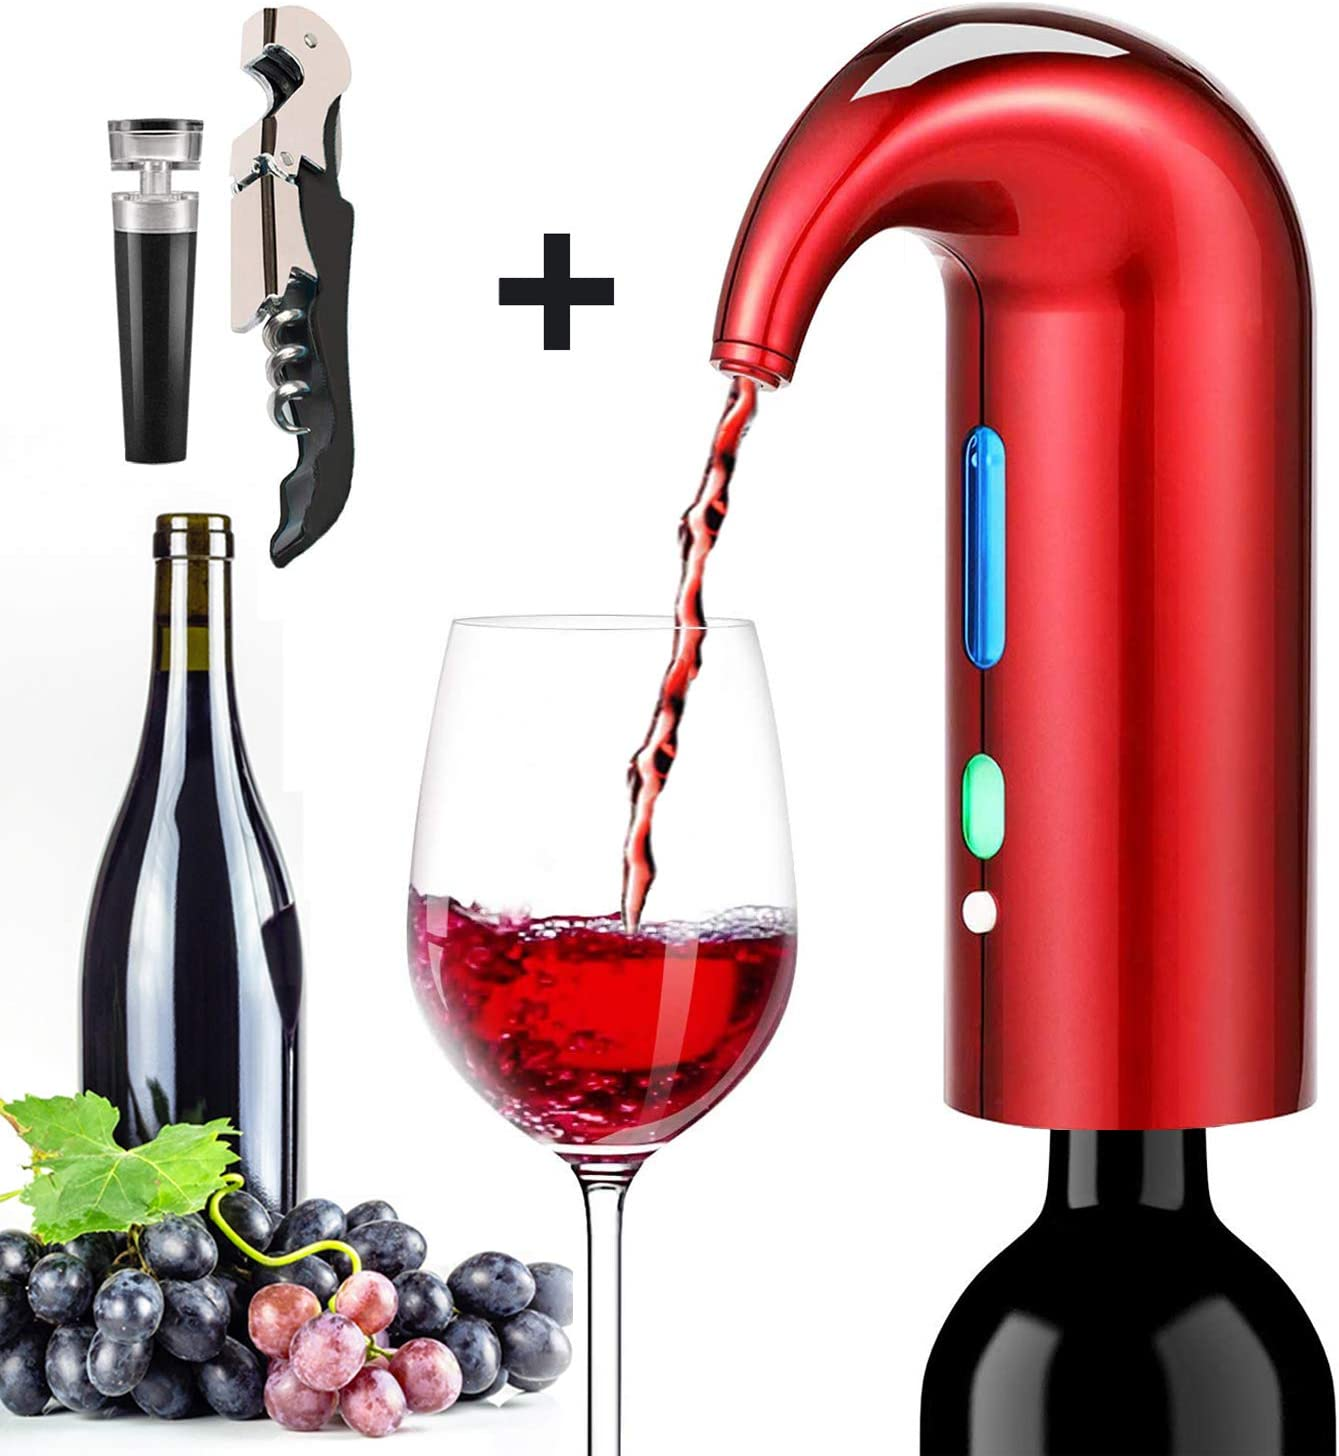 Electric Wine Aerator Pourer, Stopper Multi-Smart Automatic Filter Wine Dispenser - Premium Aerating Pourer and Decanter Spout - wine preserver(Lucky red)